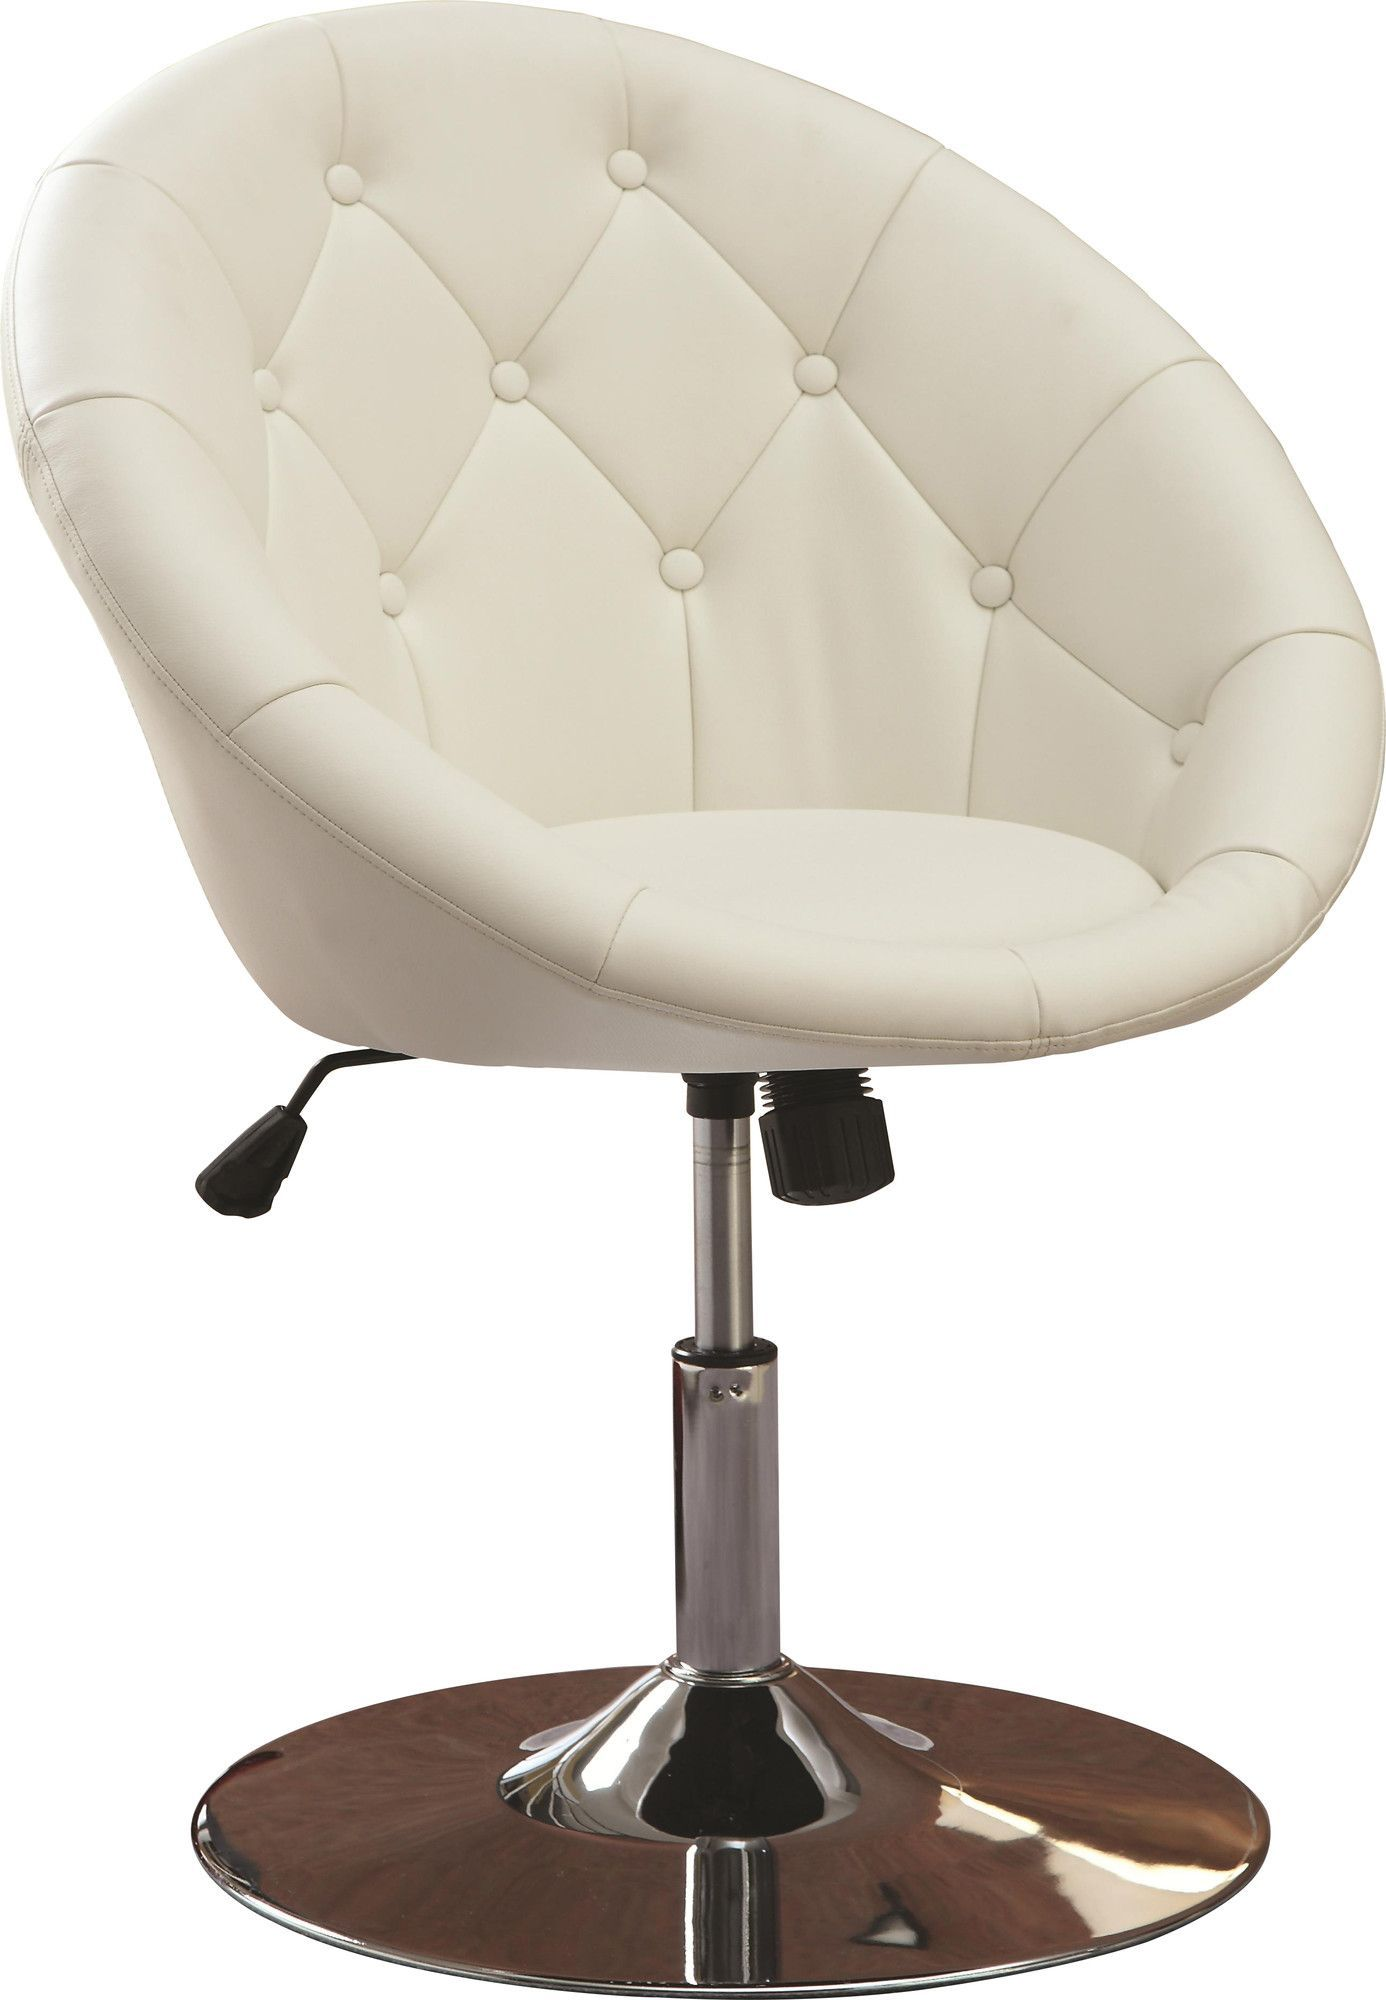 Contemporary Swivel Chairs Noas Contemporary Tufted Back Tilt Swivel Barrel Chair